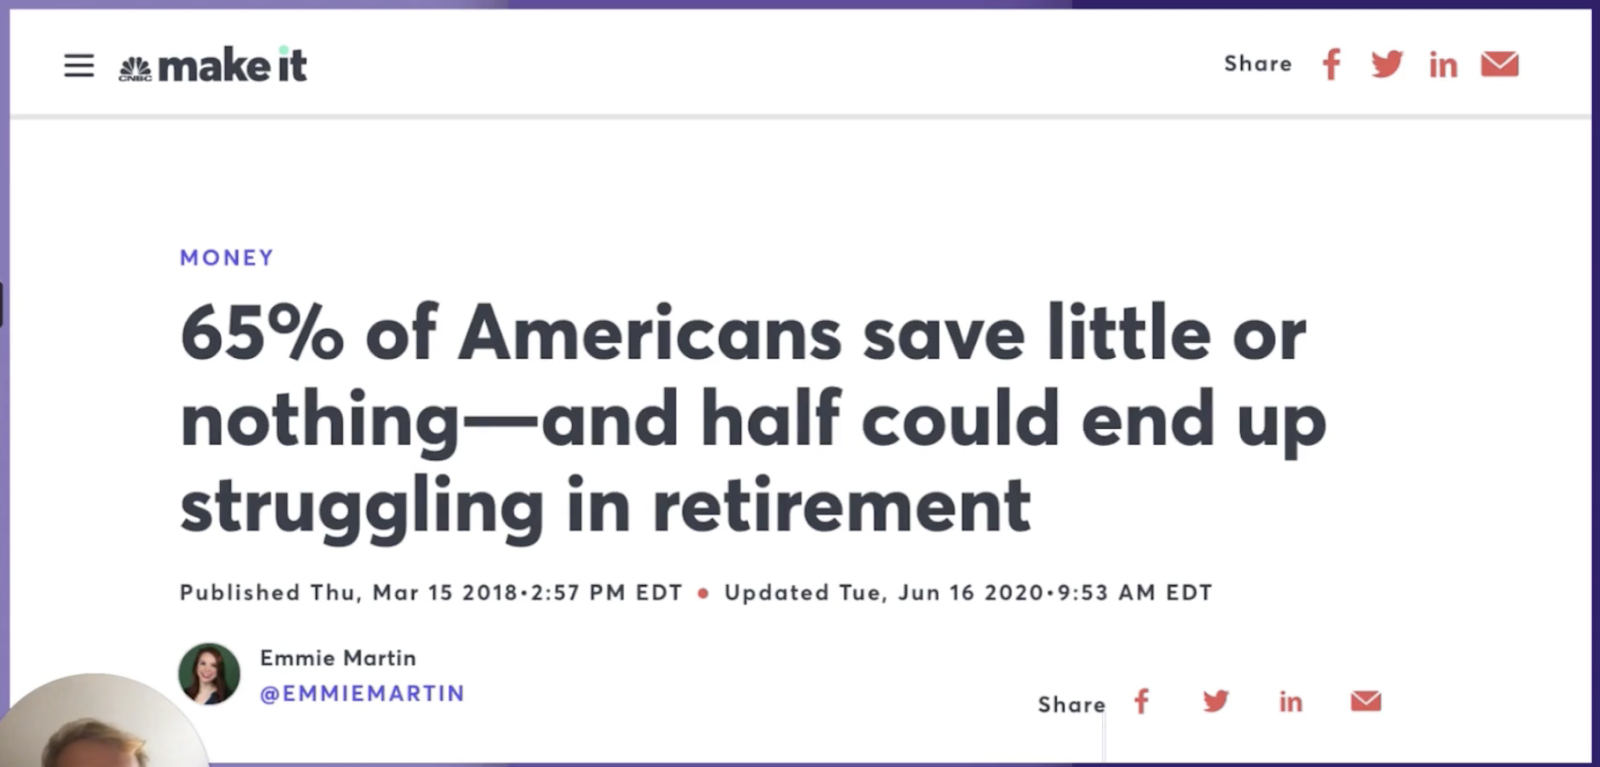 Research has shown 65% of Americans save little, with roughly 50% potentially setting themselves up to struggle in retirement.